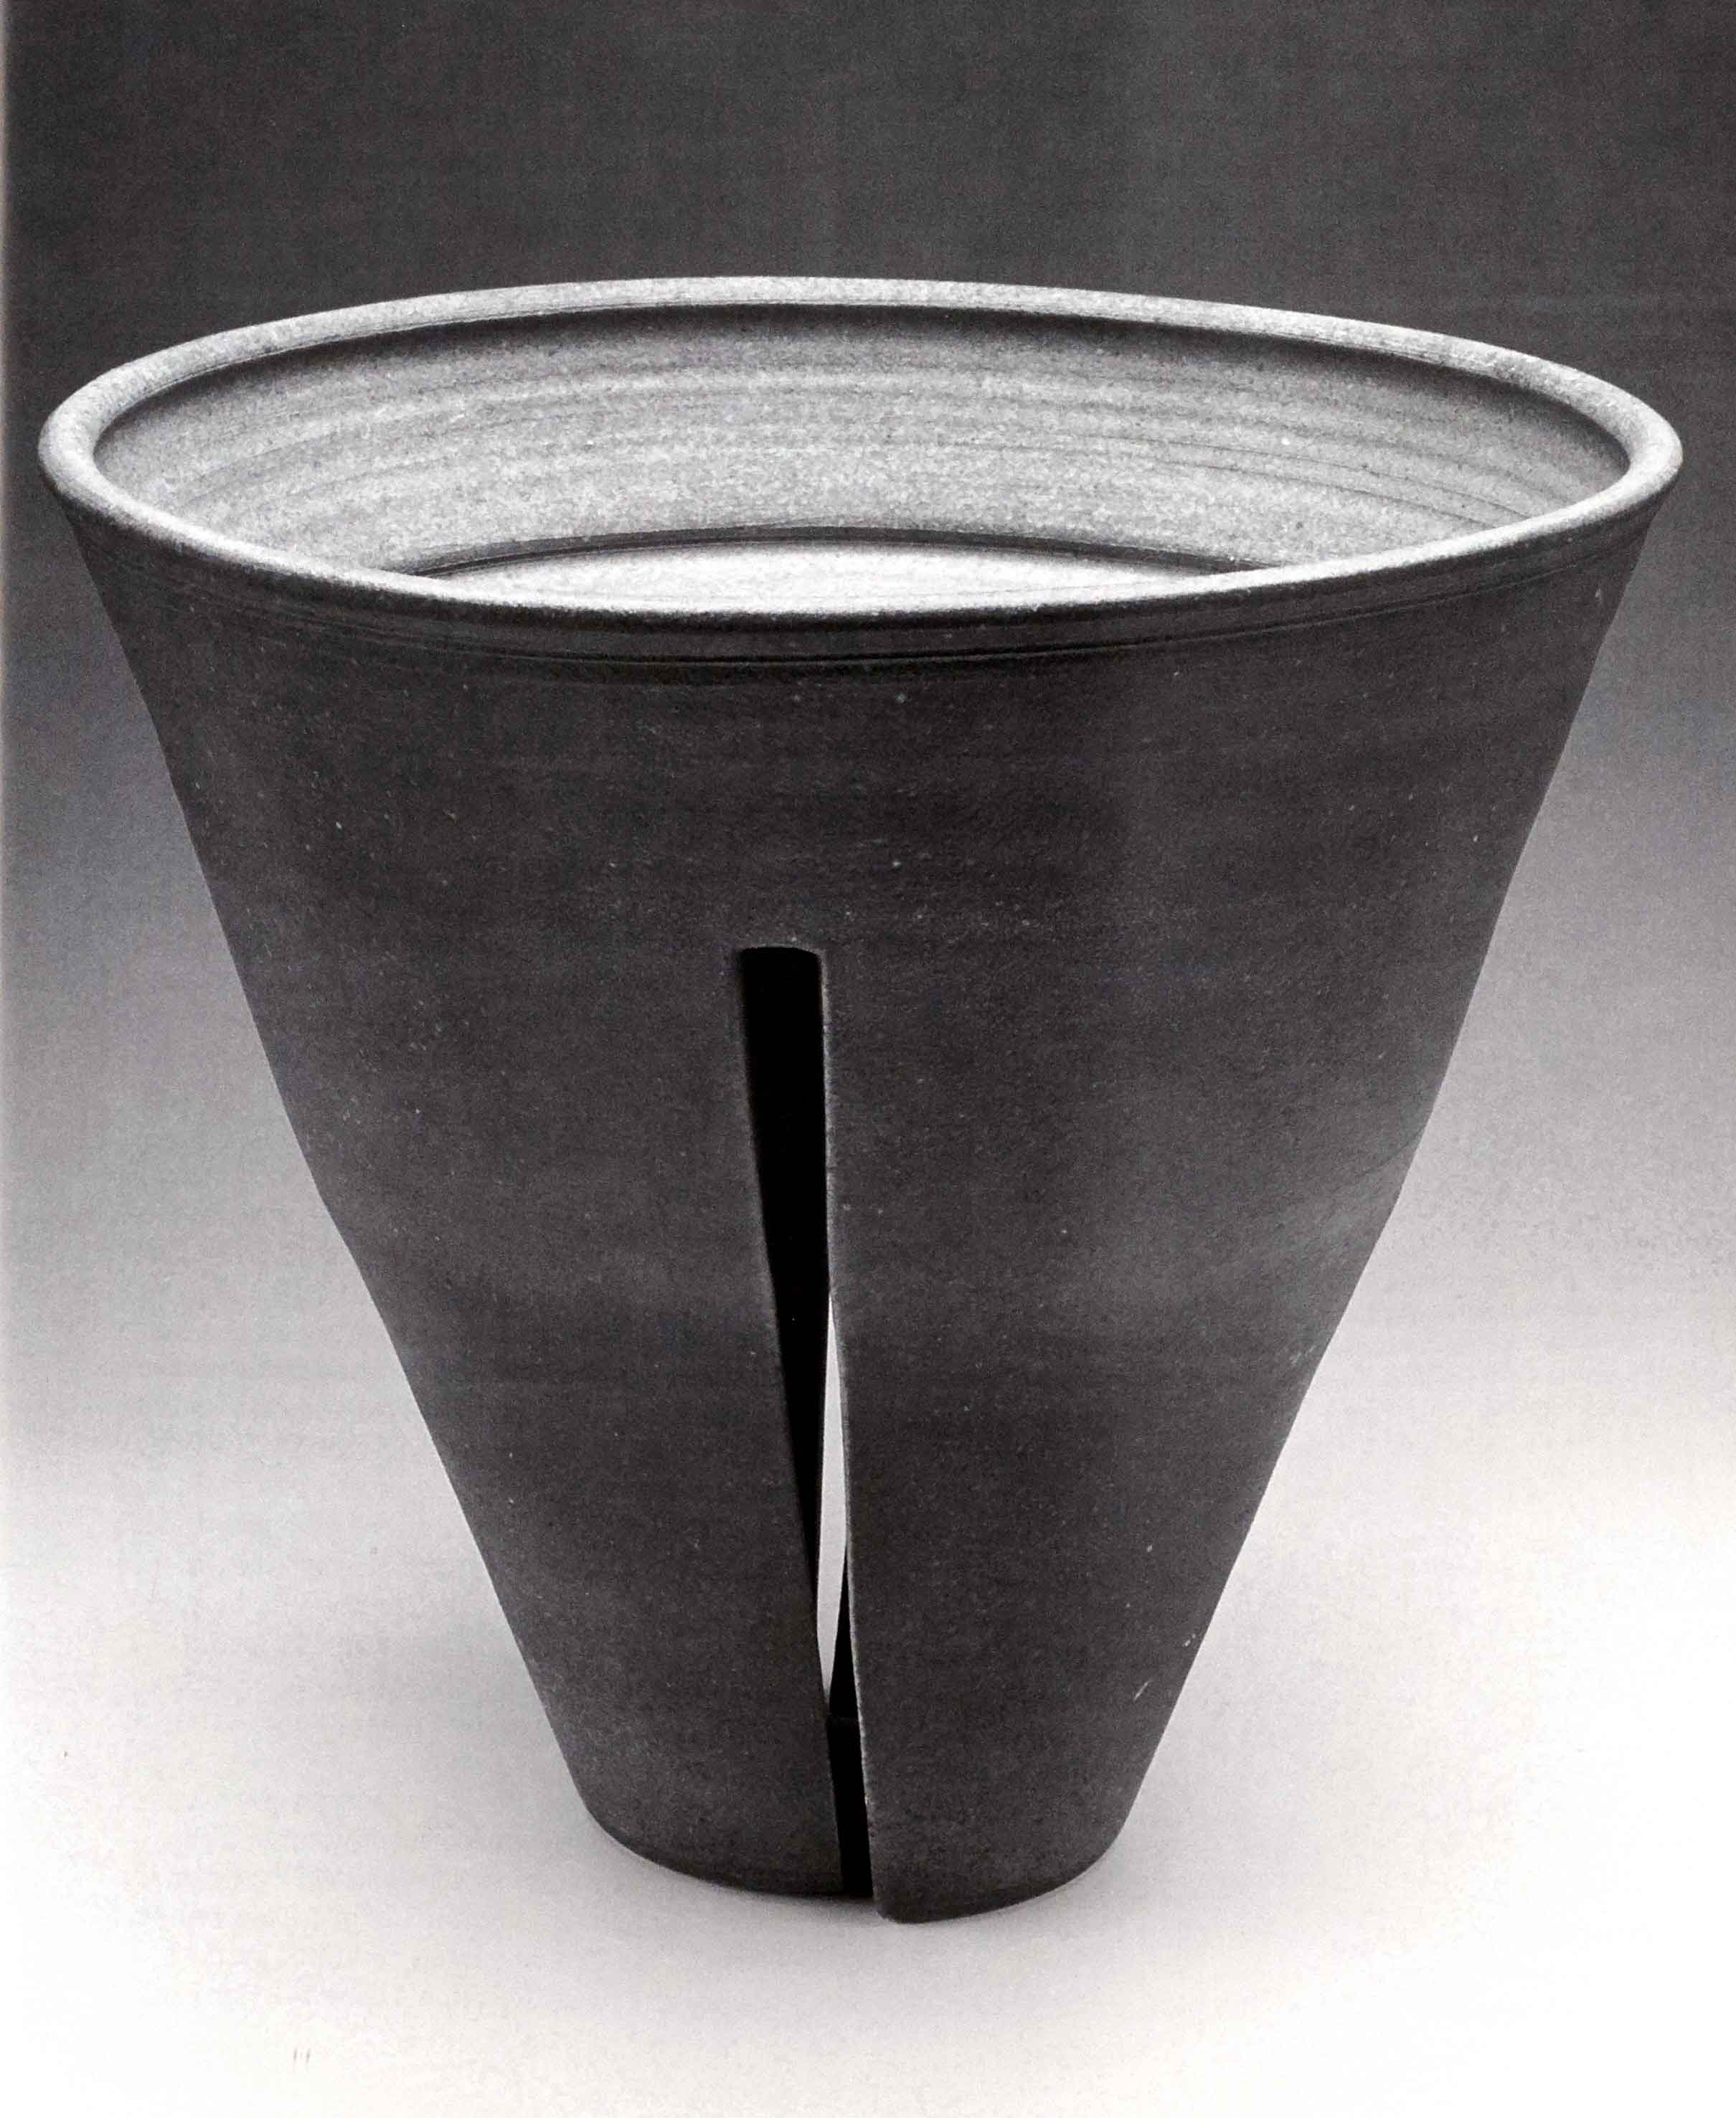 Karen Karnes. Split Footed Bowl, 1990. Glazed stoneware, wood-fired, 13 x 14 in. Photo courtesy of the artist, from Vol. 39, No. 1, 2011.